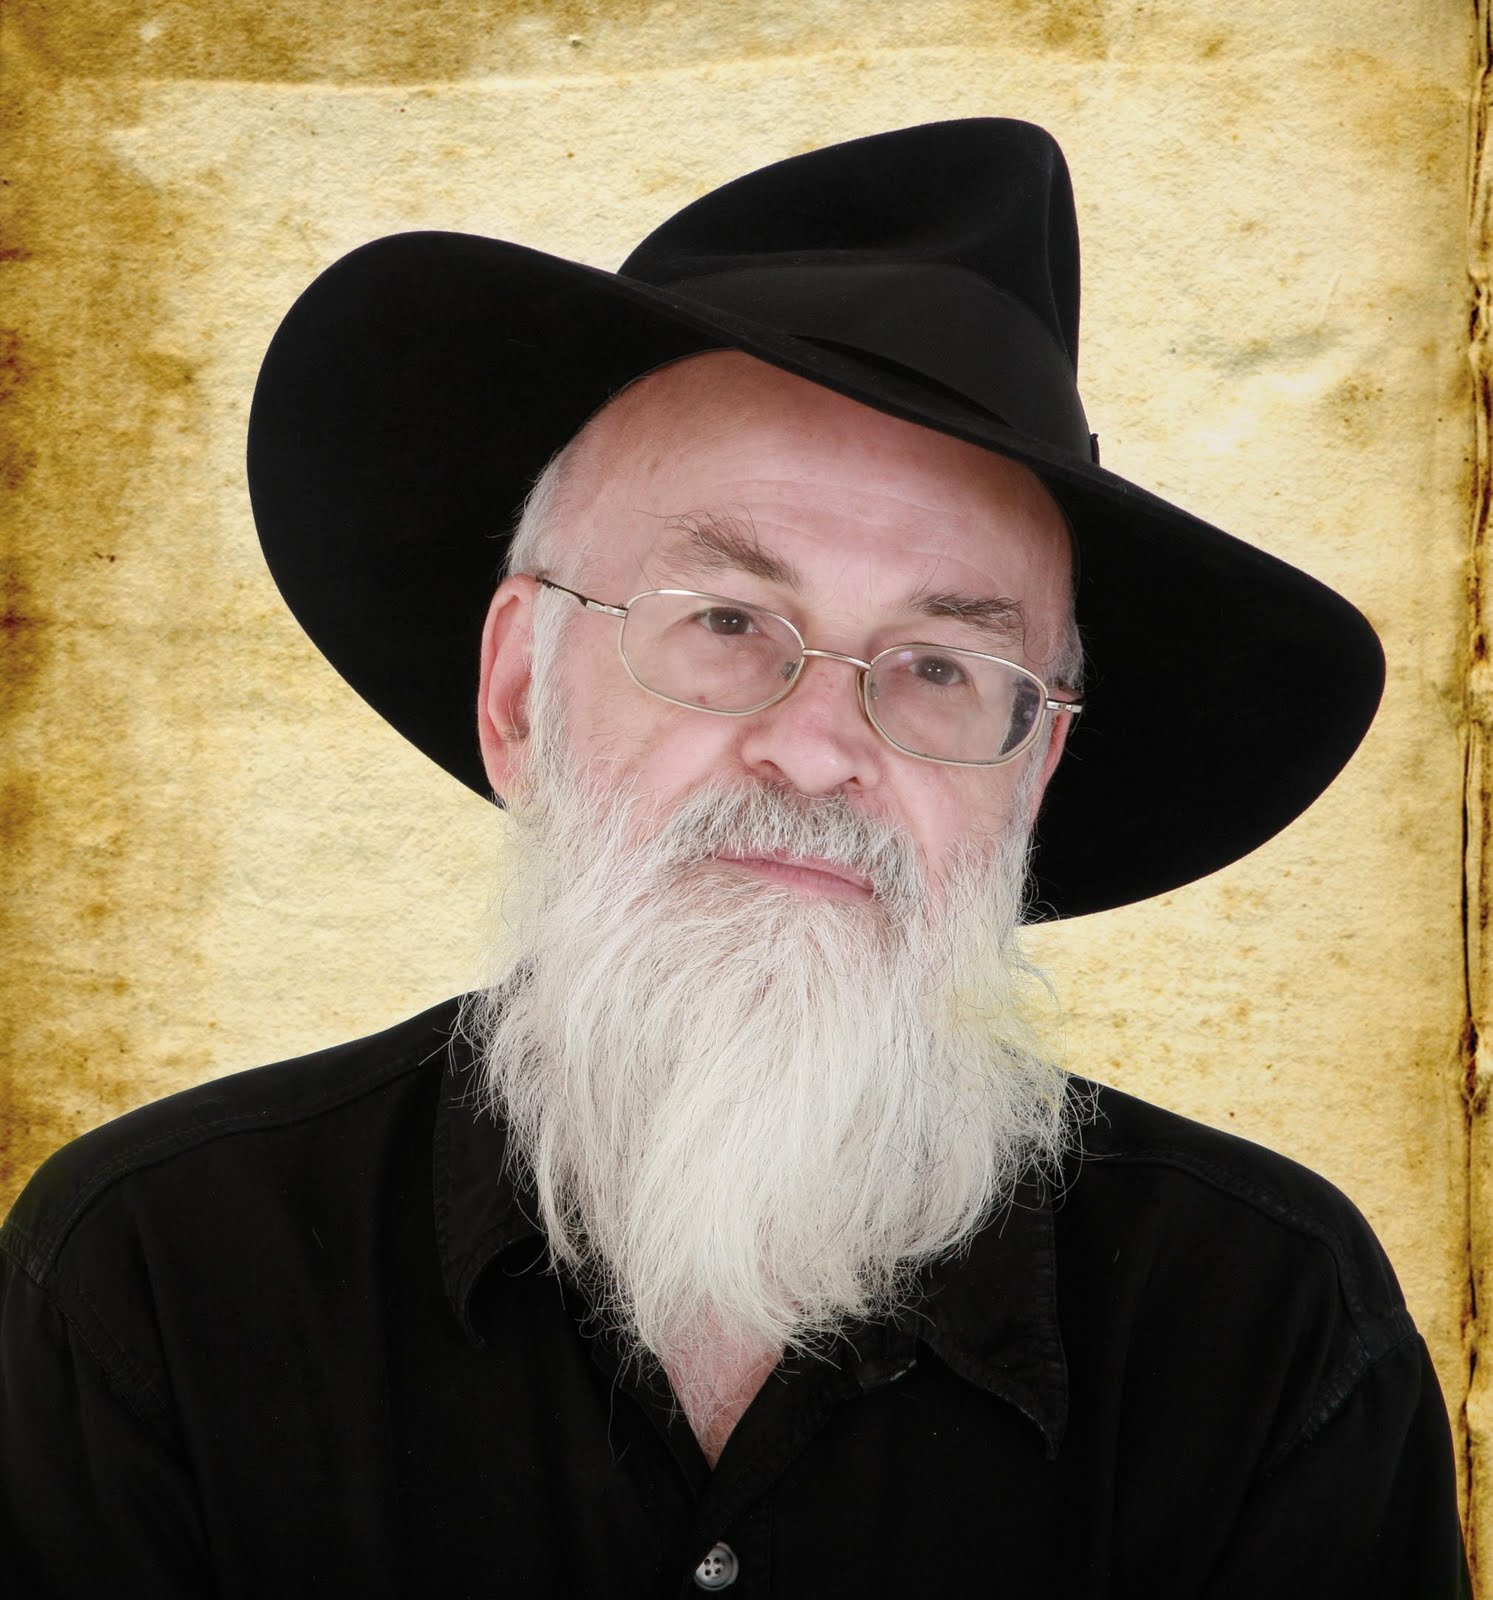 terry pratchett Terry pratchett is an internationally acclaimed author who specializes in fantasy books he was born terrence david john pratchett in 28th of april 1948 in beaconsfield buckinghamshire, england.